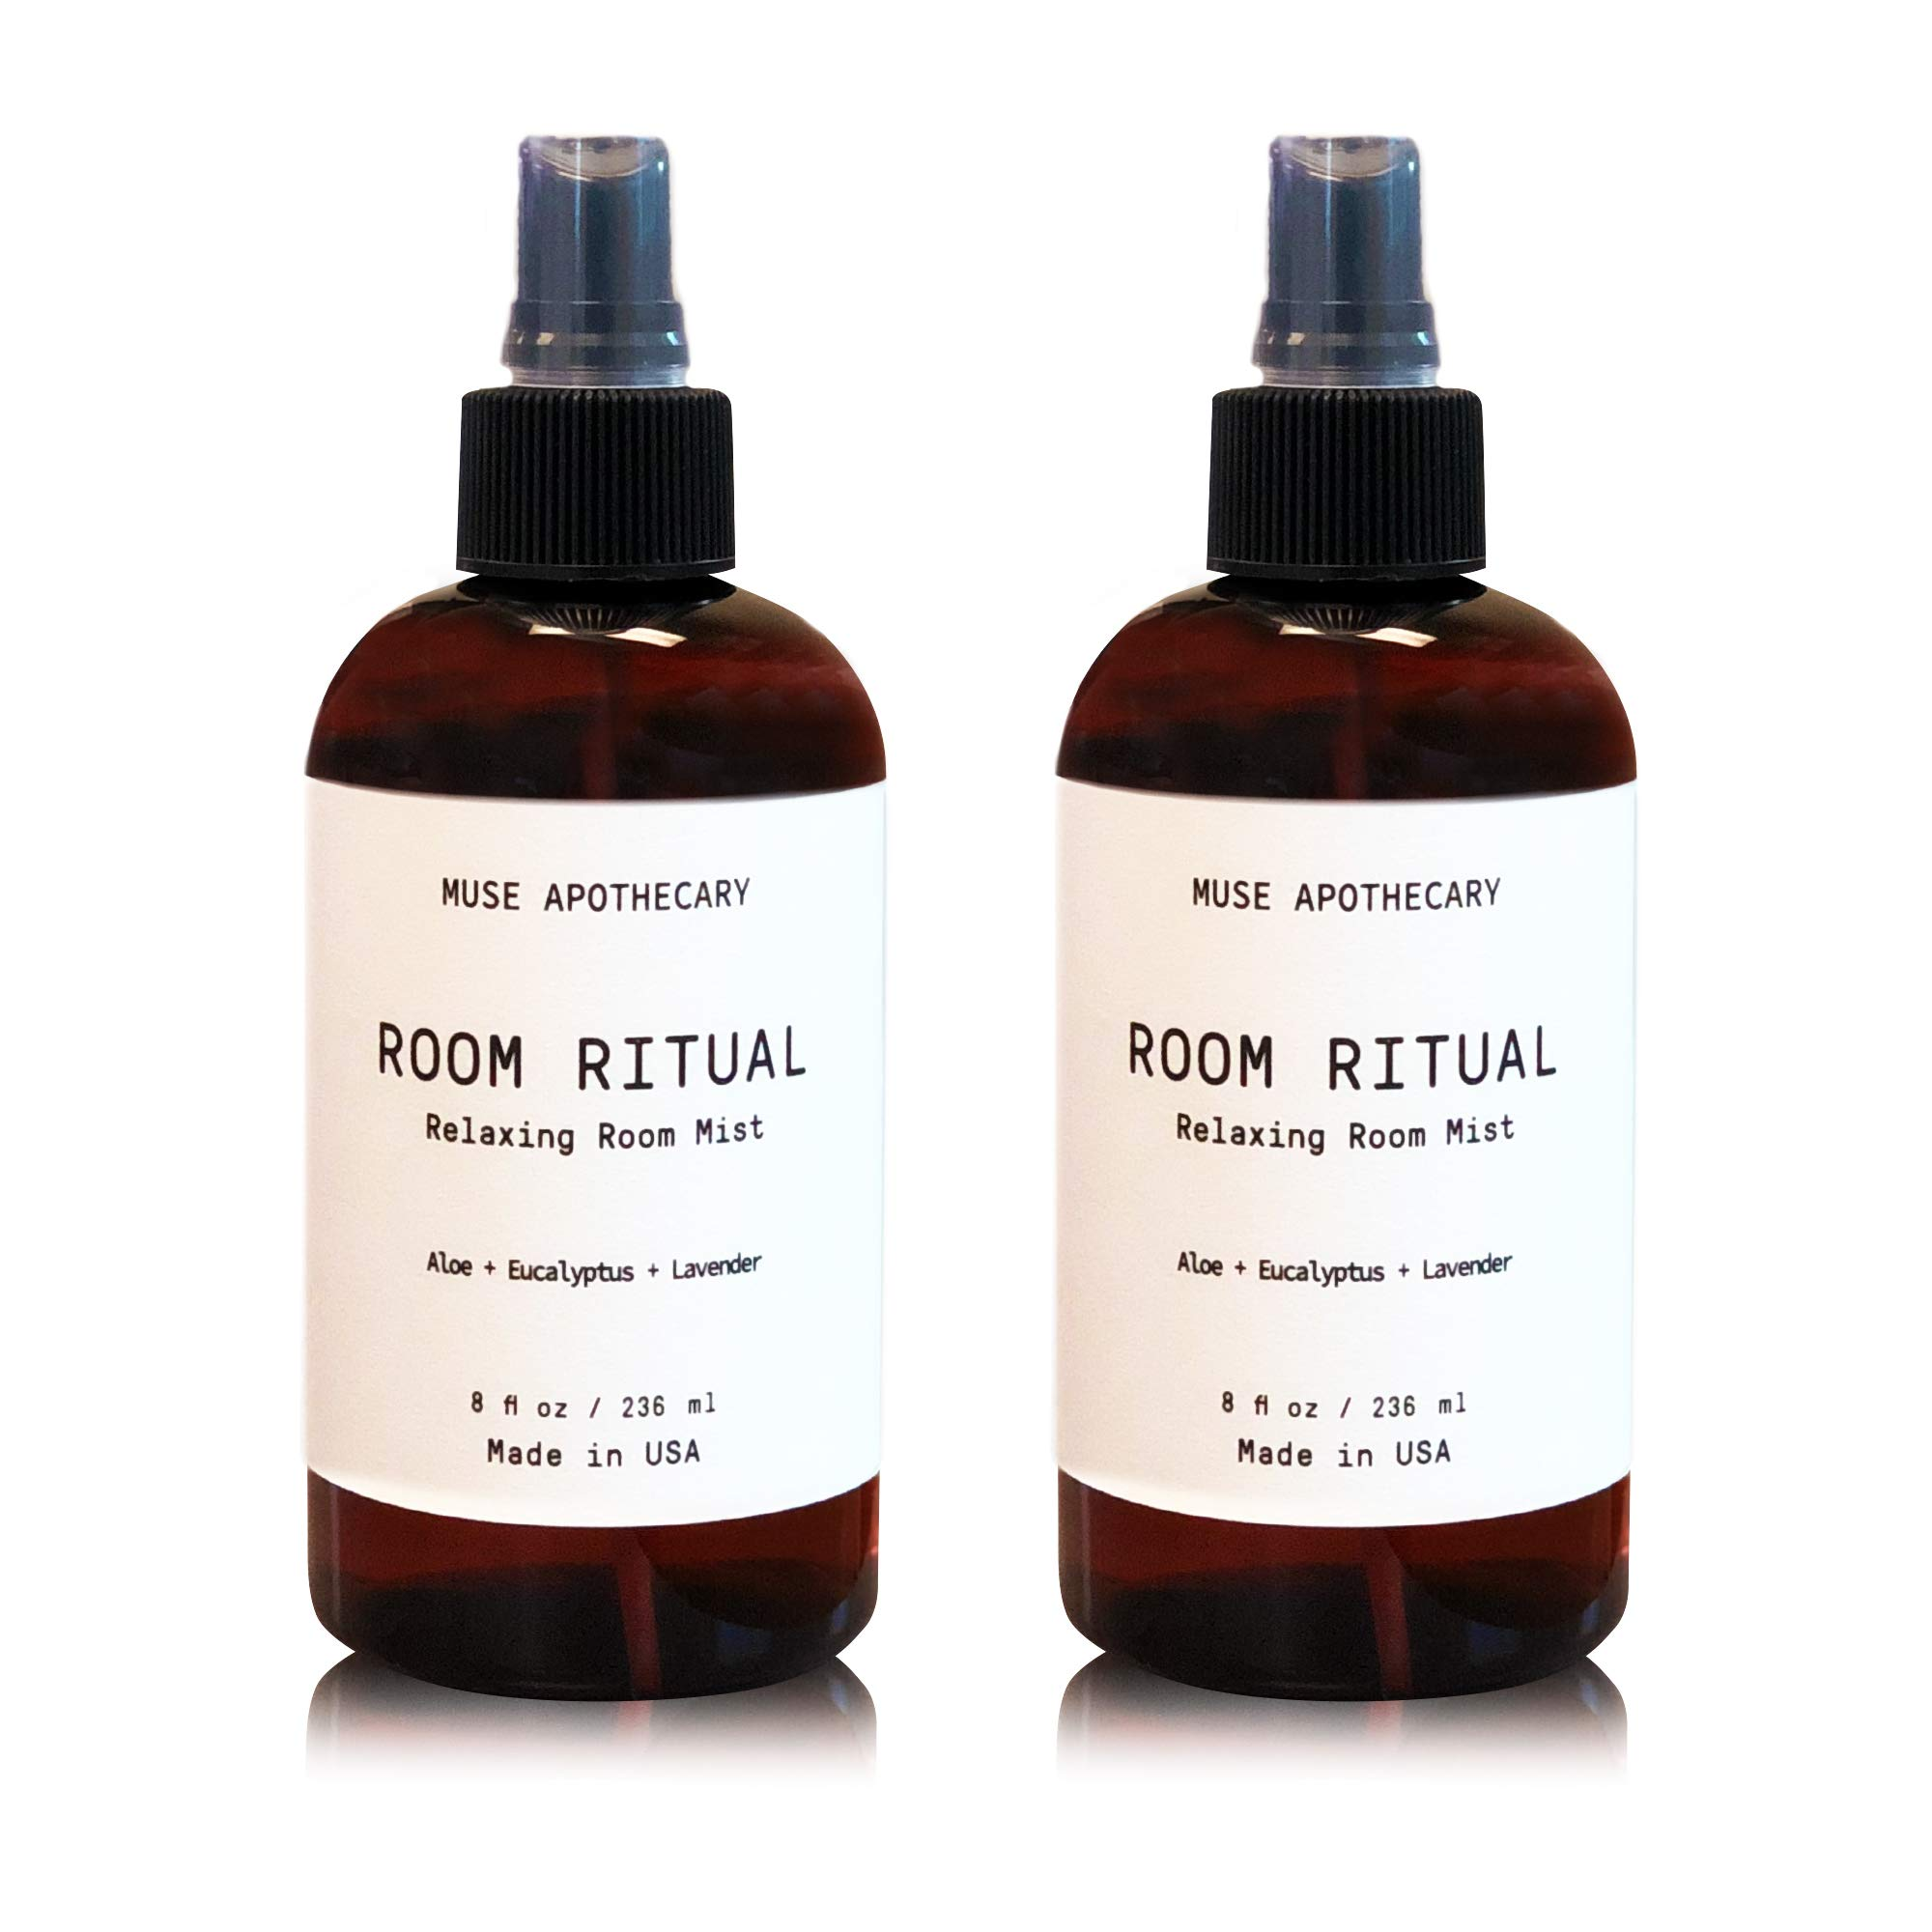 Muse Bath Apothecary Room Ritual - Aromatic and Relaxing Room Mist, 8 oz, Infused with Natural Essential Oils - Aloe + Eucalyptus + Lavender, 2 Pack by Muse Bath Apothecary